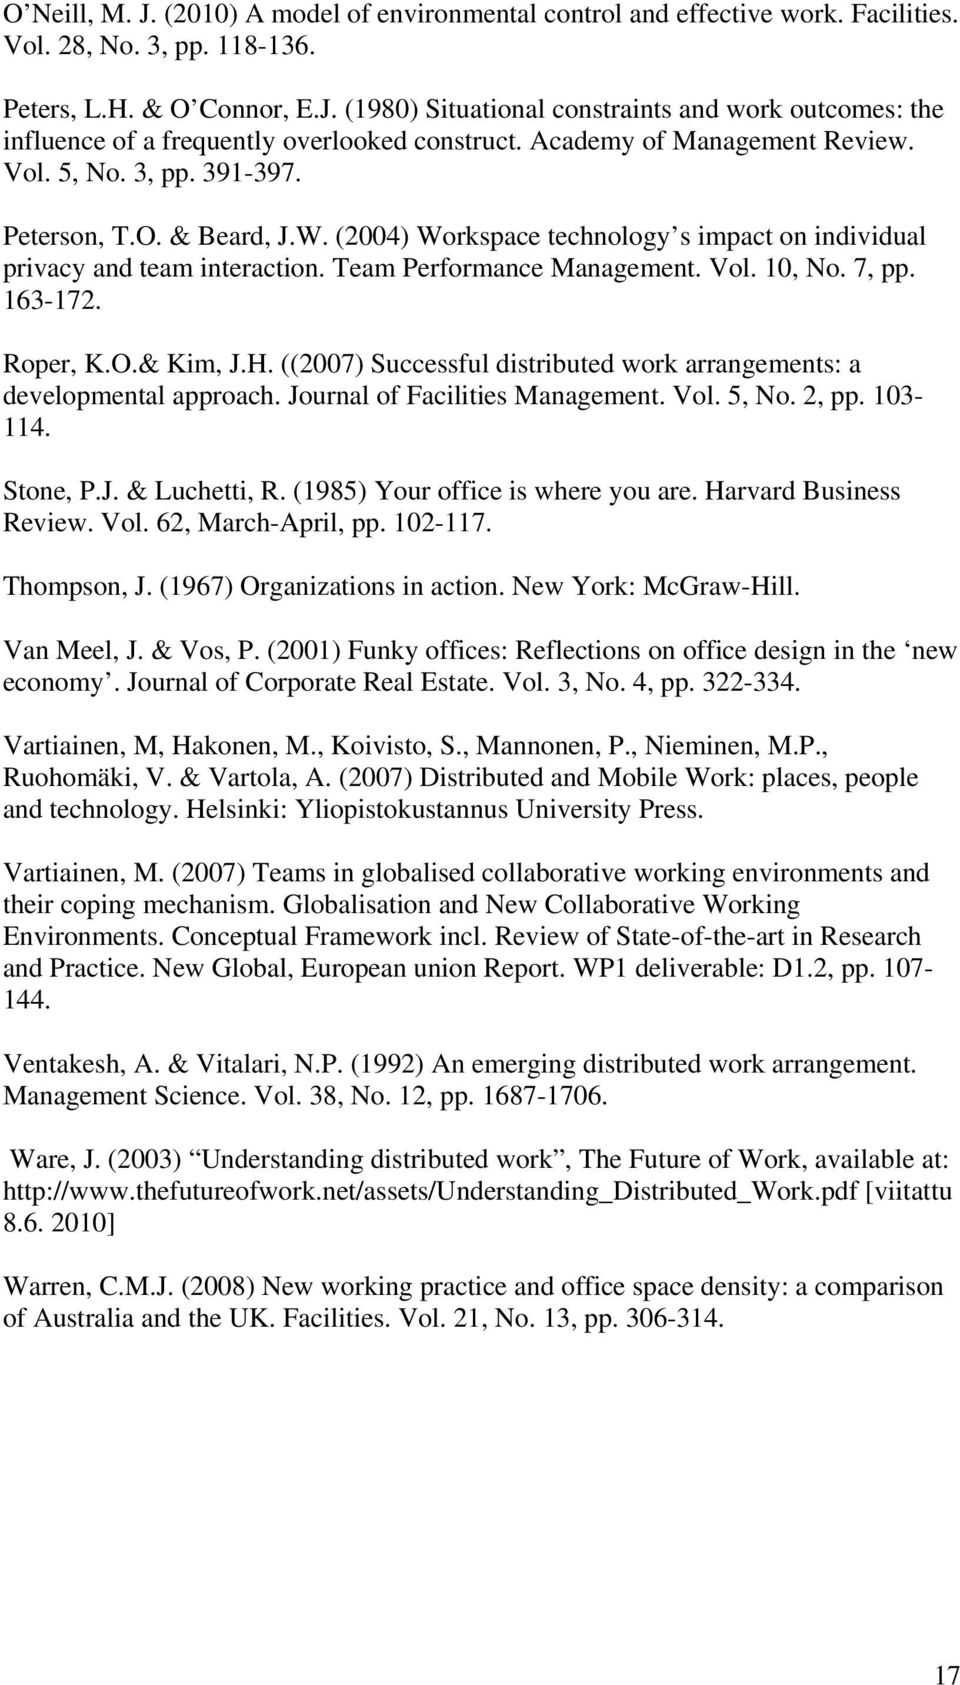 Vol. 10, No. 7, pp. 163-172. Roper, K.O.& Kim, J.H. ((2007) Successful distributed work arrangements: a developmental approach. Journal of Facilities Management. Vol. 5, No. 2, pp. 103-114. Stone, P.